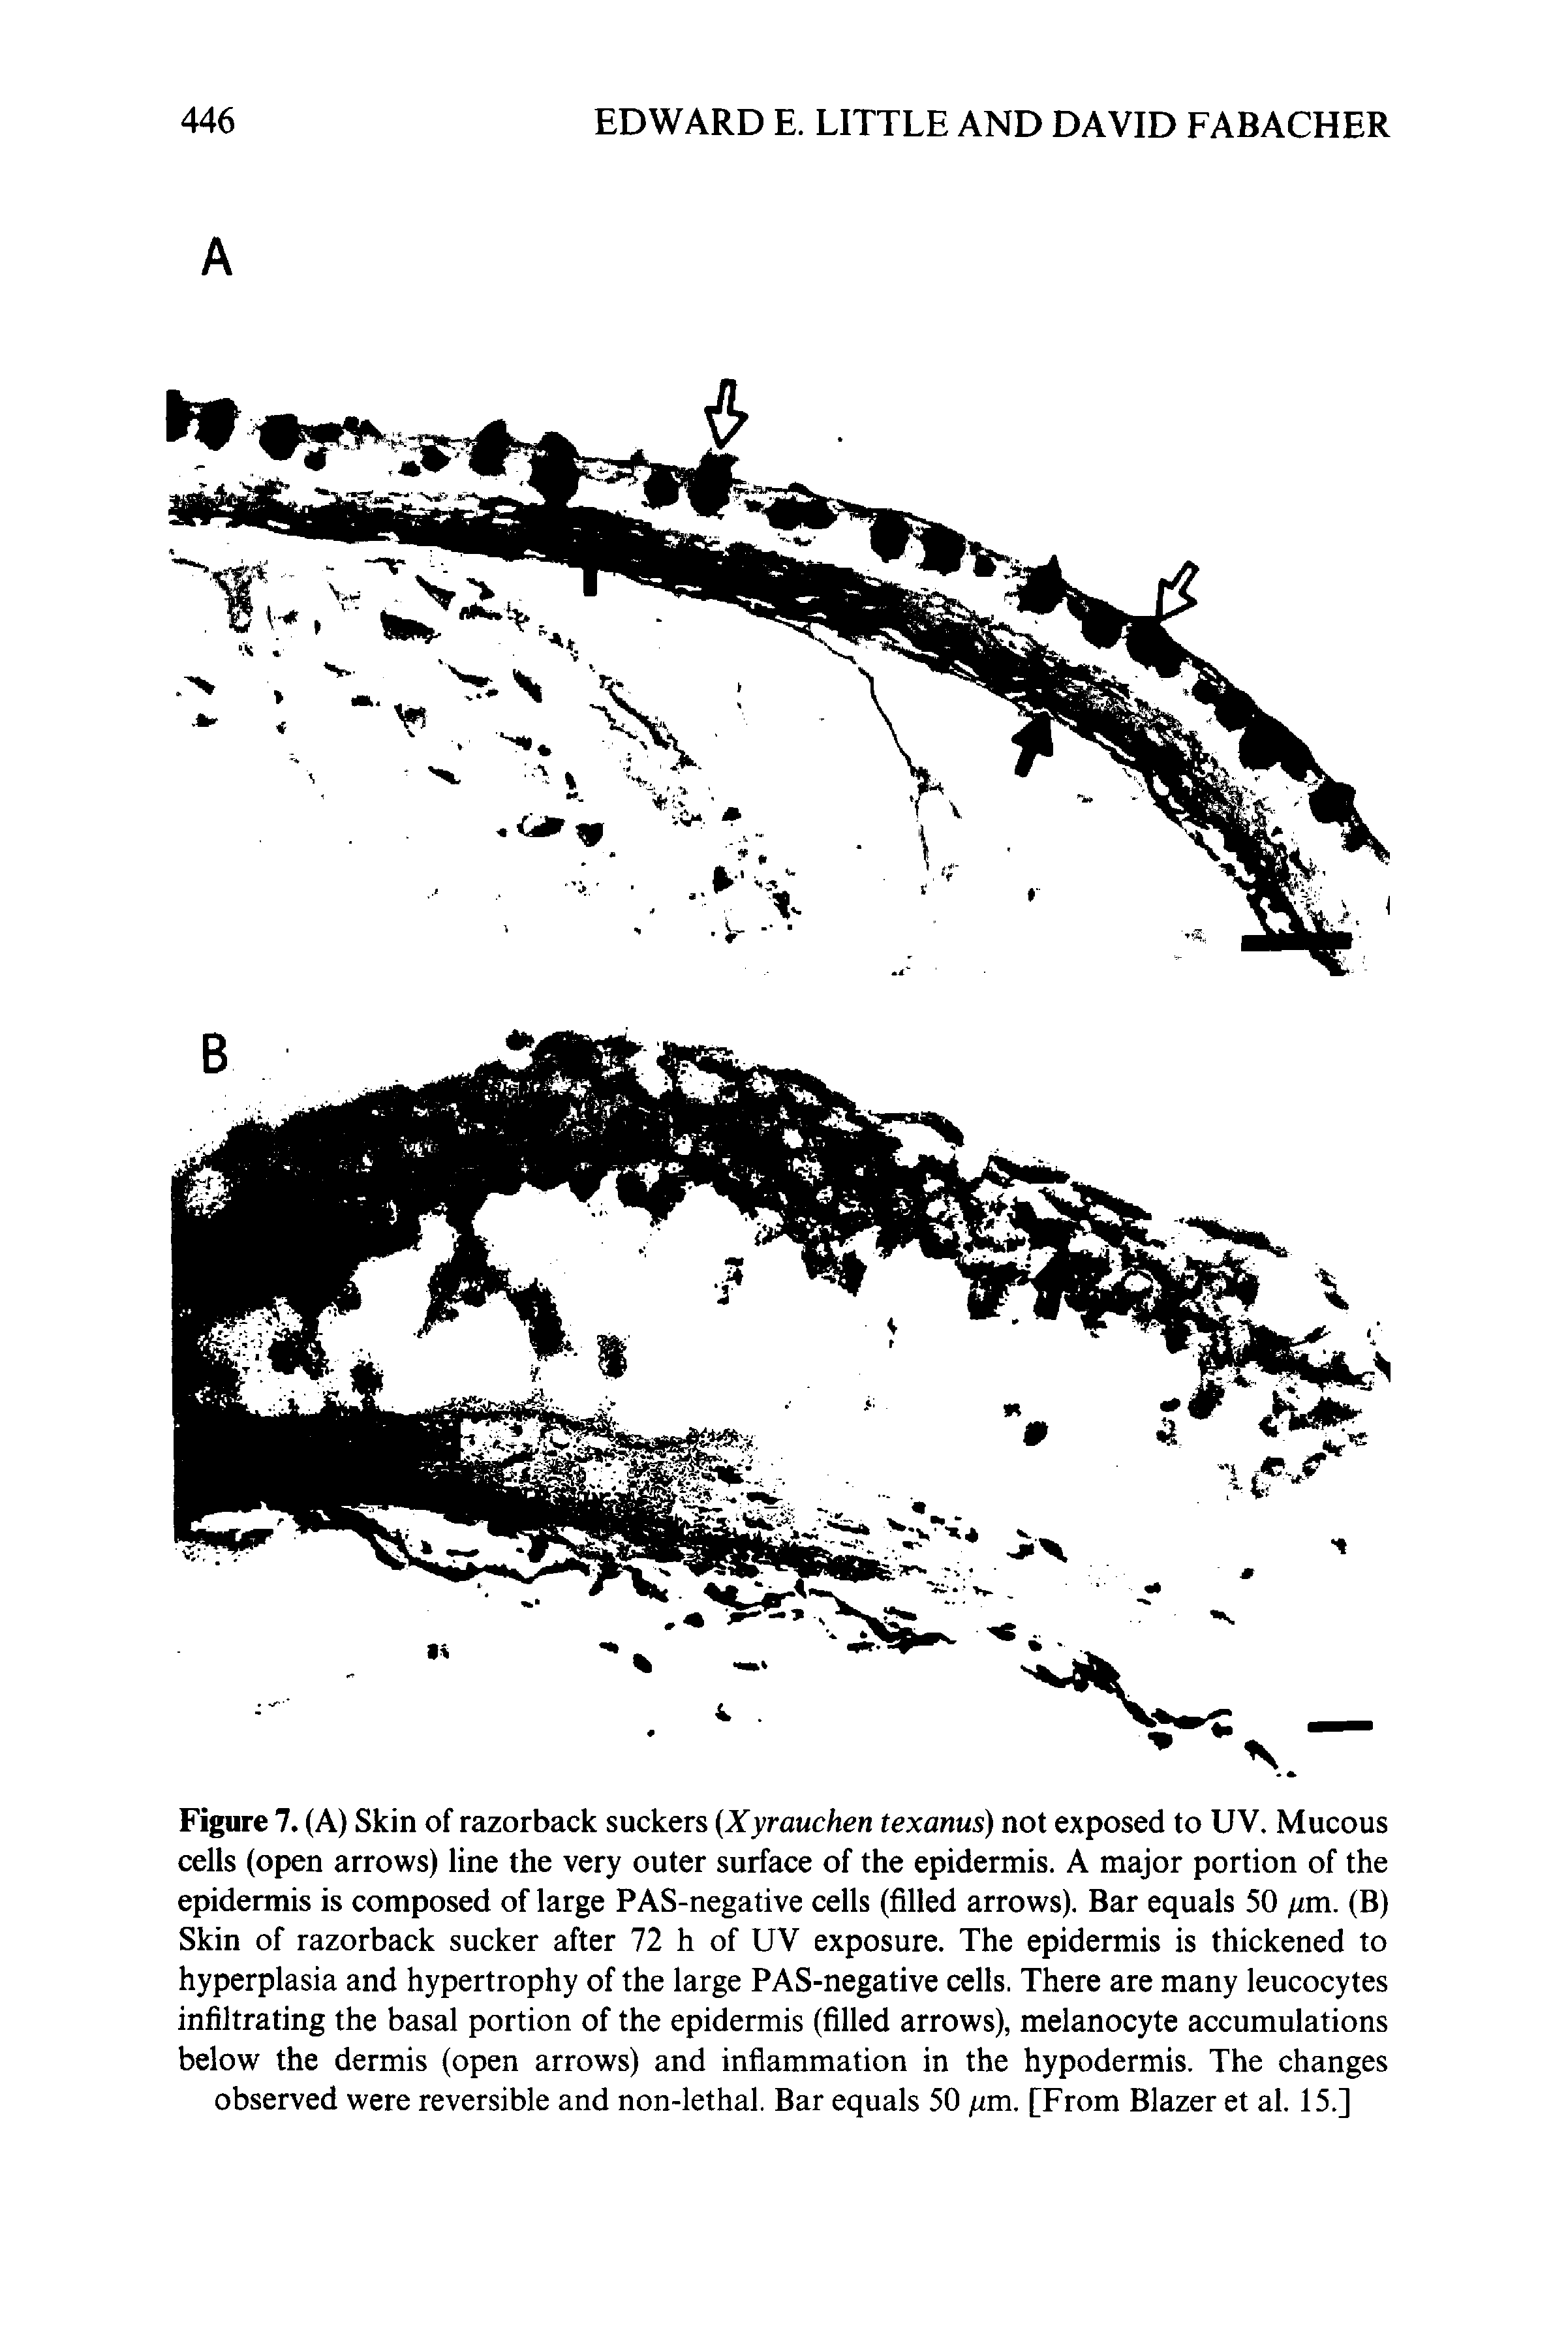 Figure 7. (A) Skin of razorback suckers Xyrauchen texanus) not exposed to UV. Mucous cells (open arrows) line the very outer surface of the epidermis. A major portion of the epidermis is composed of large PAS-negative cells (filled arrows). Bar equals 50 /zm. (B) Skin of razorback sucker after 72 h of UV exposure. The epidermis is thickened to hyperplasia and hypertrophy of the large PAS-negative cells. There are many leucocytes infiltrating the basal portion of the epidermis (filled arrows), melanocyte accumulations below the dermis (open arrows) and inflammation in the hypodermis. The changes observed were reversible and non-lethal. Bar equals 50 /zm. [From Blazer et al. 15.]...